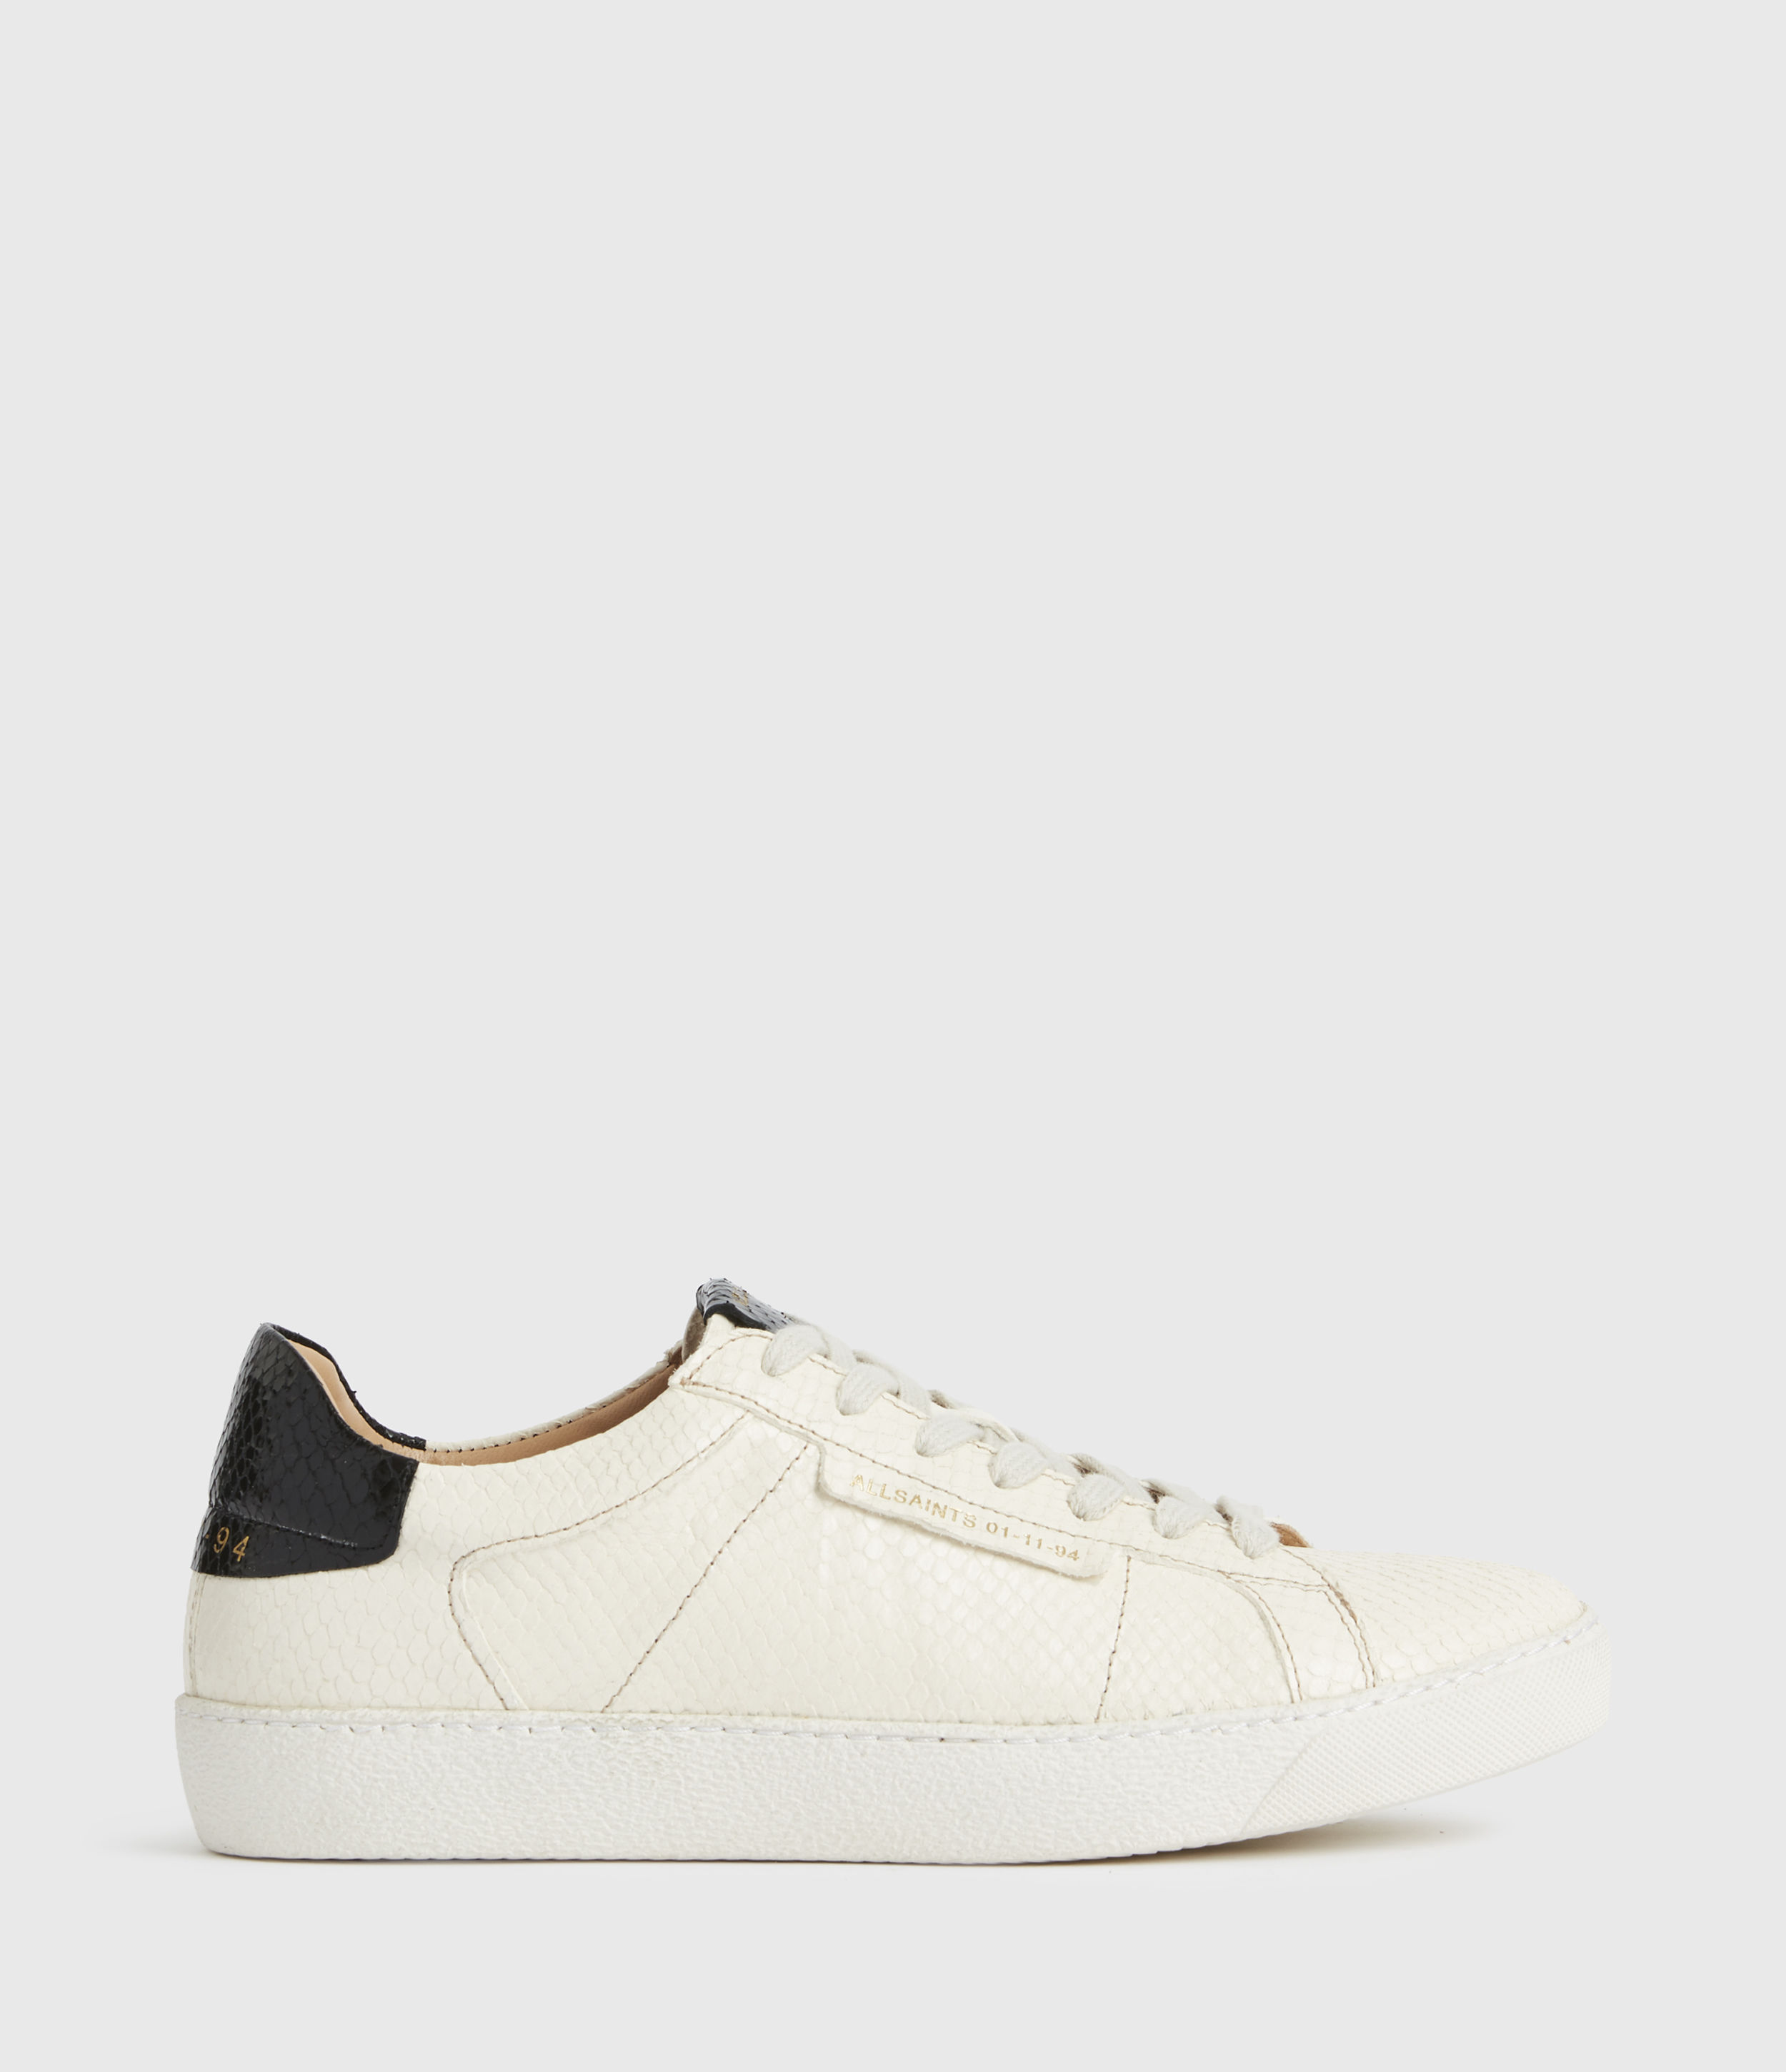 AllSaints Womens Sheer Snake Leather Trainers, White, Size: UK 5/US 7/EU 38